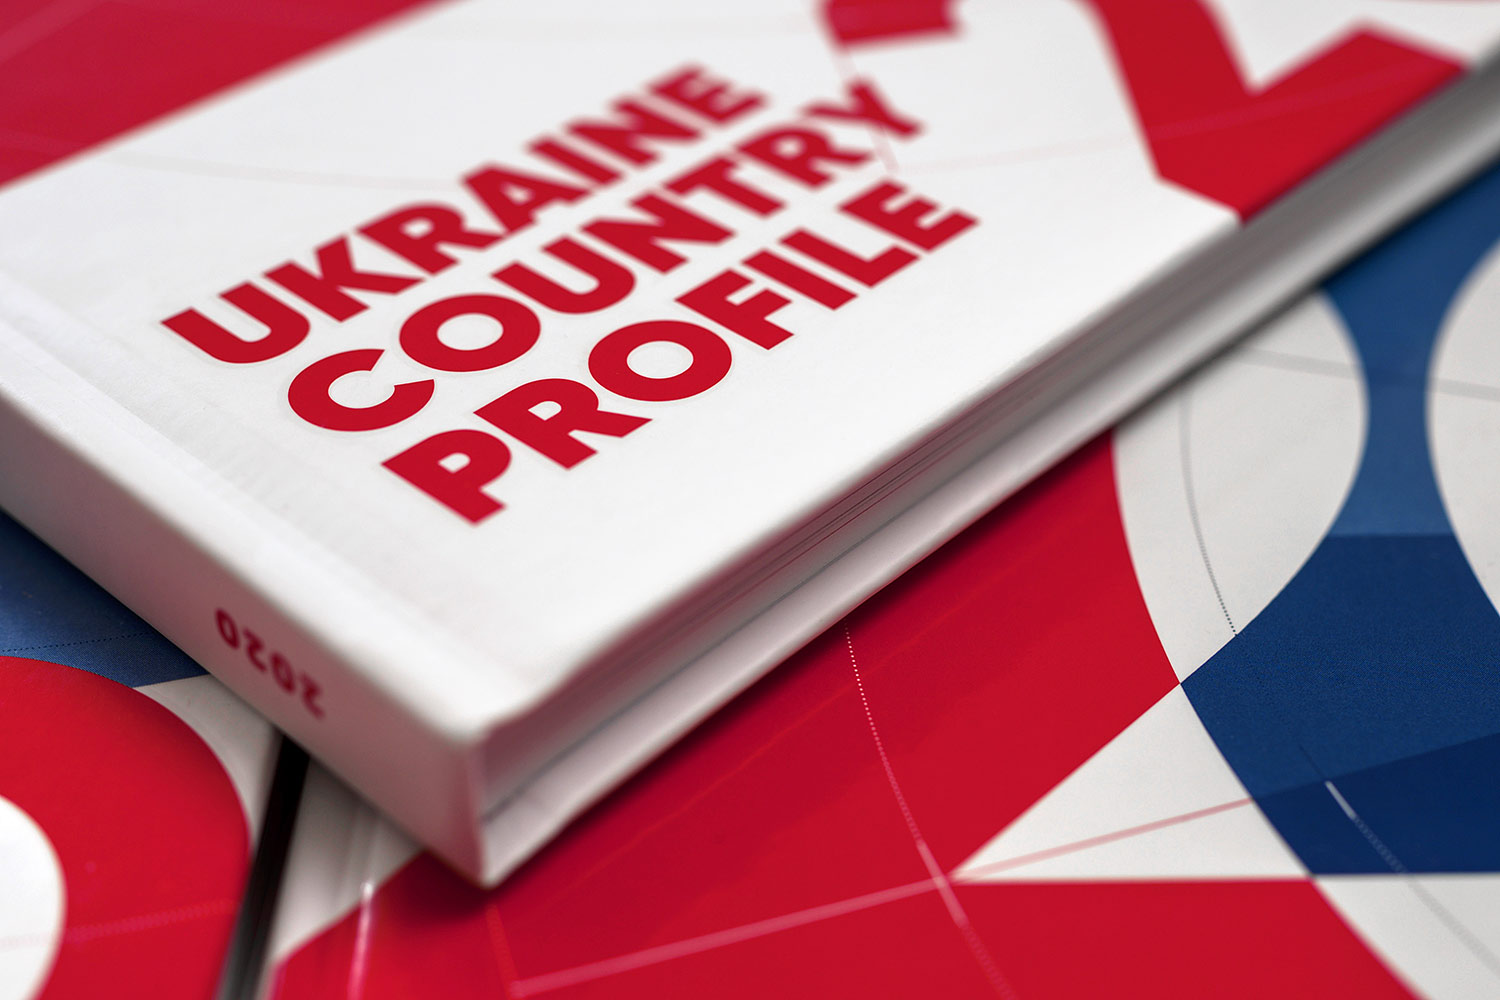 Business cover design for an economic publication in red and blue colors. Ukraine Country Profile 2020 book.